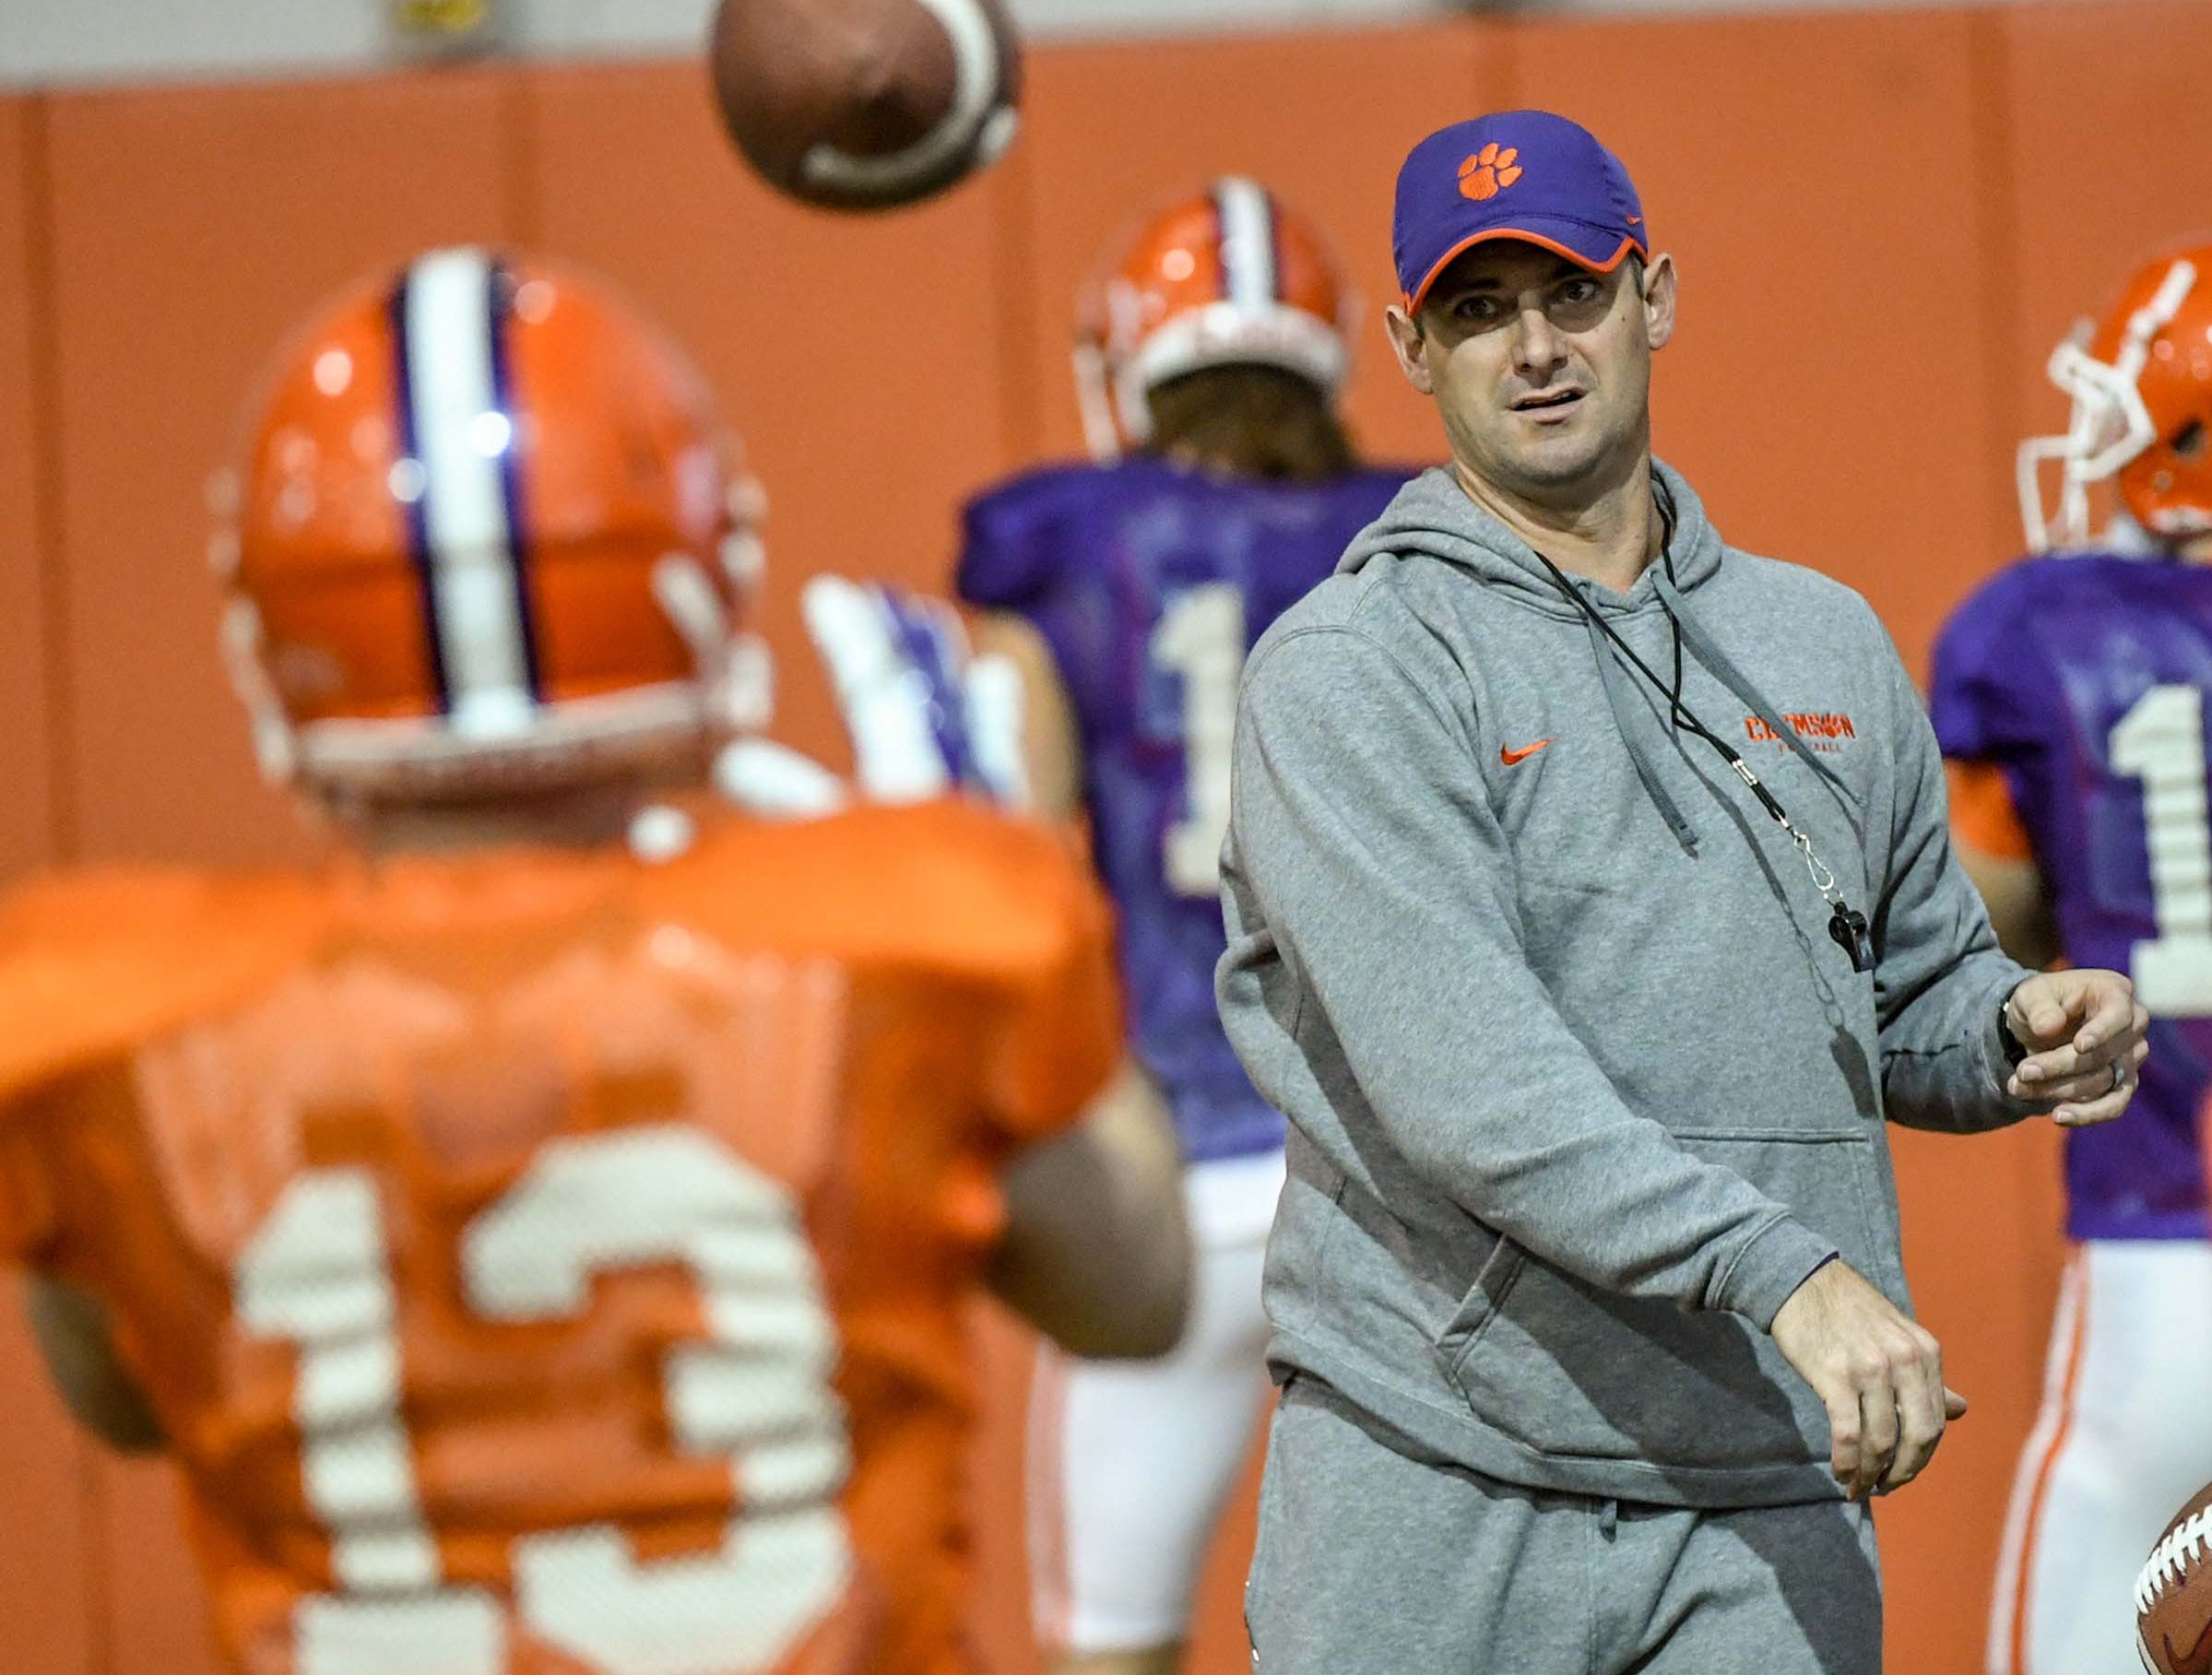 Clemson wide receiver coach Jeff Scott throws to Clemson wide receiver Hunter Renfrow (13) during practice for the Cotton Bowl at the Poe Indoor Facility in Clemson Friday, December 14, 2018.